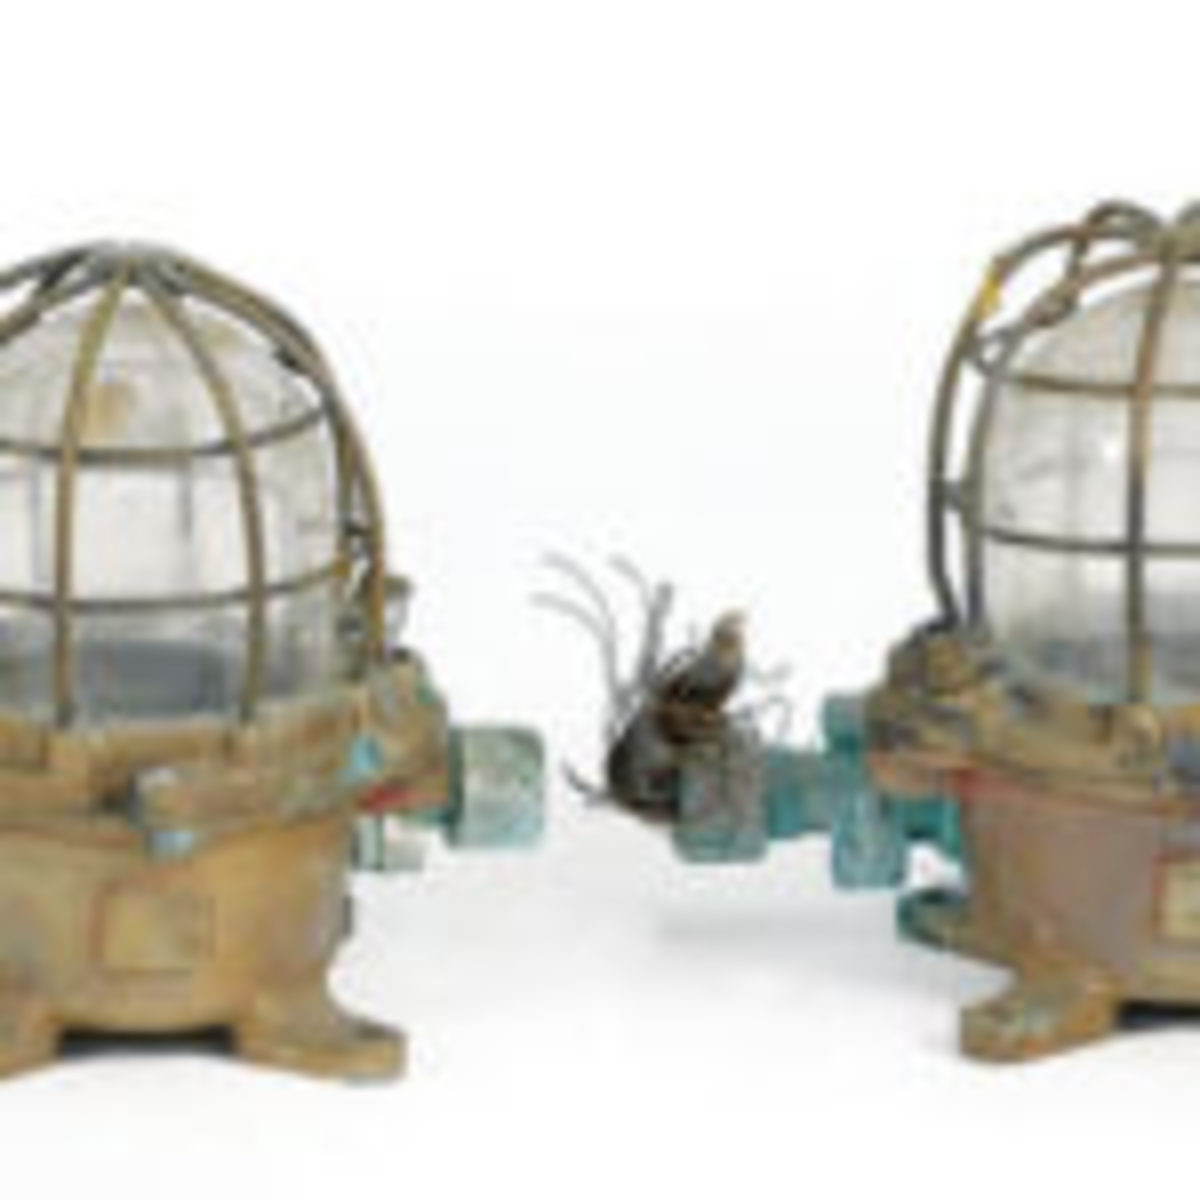 "Lamps, pair, bulkheads, 20th century, 11"" h., $120. Eldred's Auctioneers & Appraisers, www.eldreds.com"